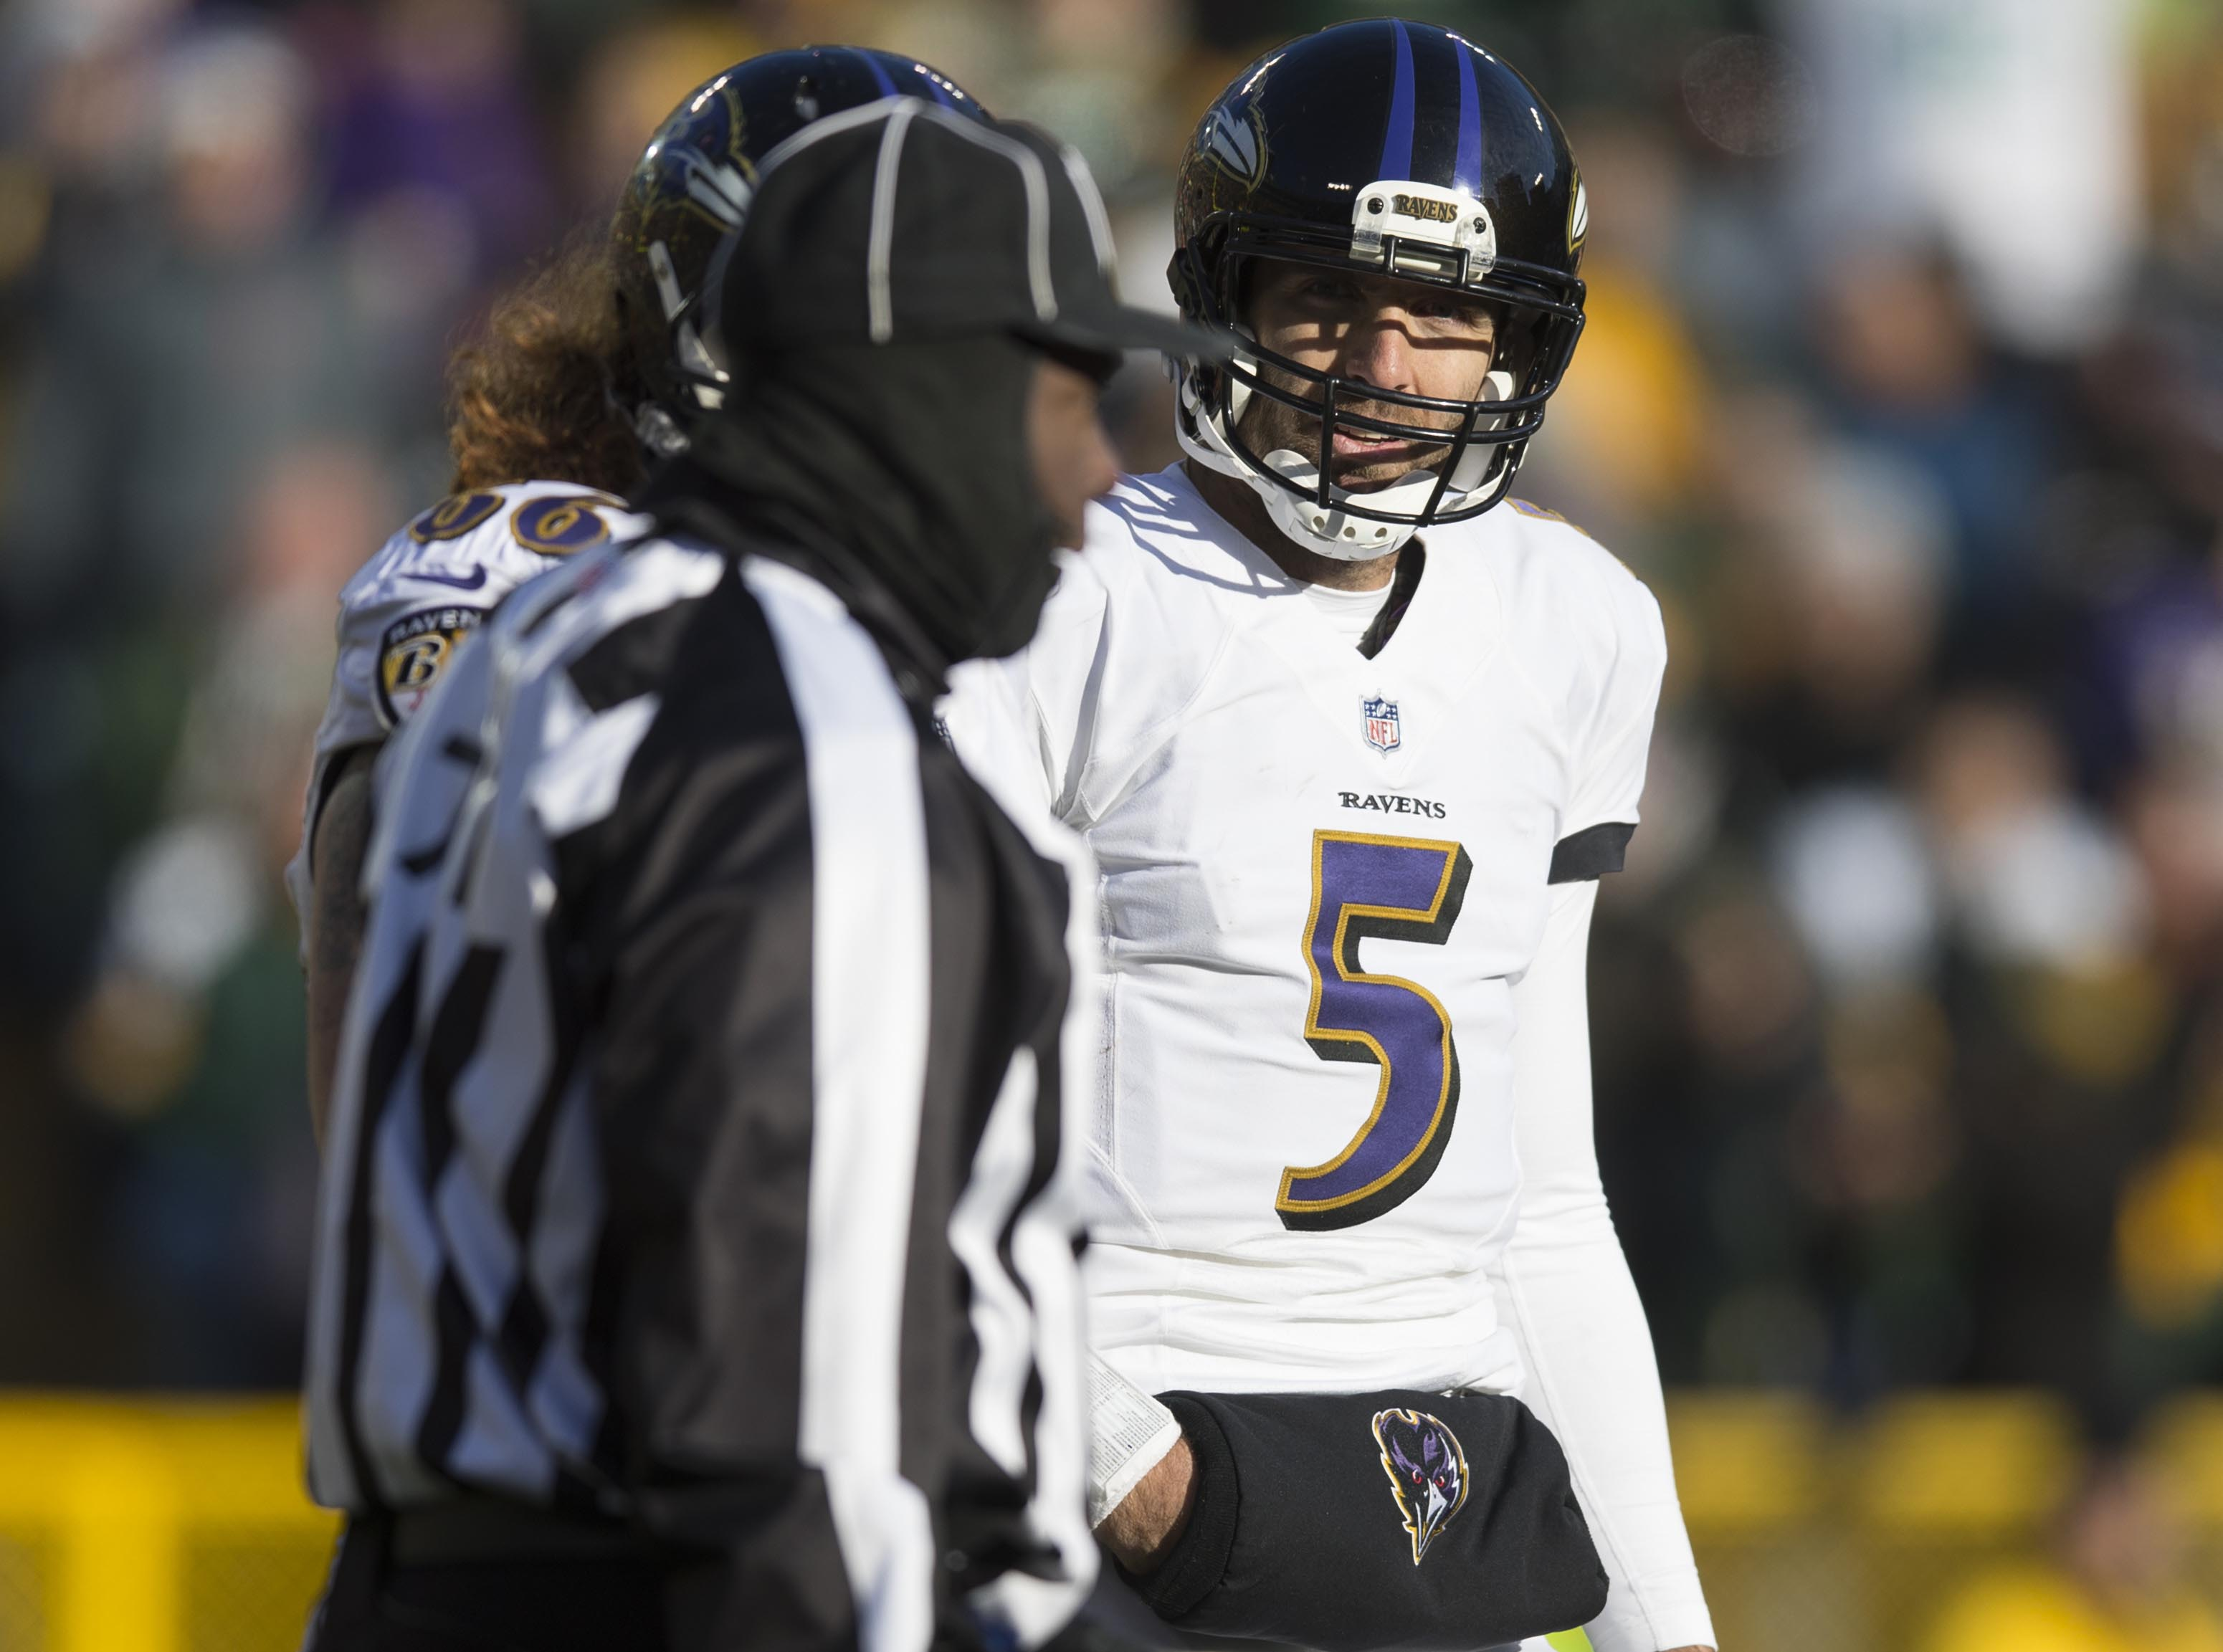 NFL: Baltimore Ravens at Green Bay Packers